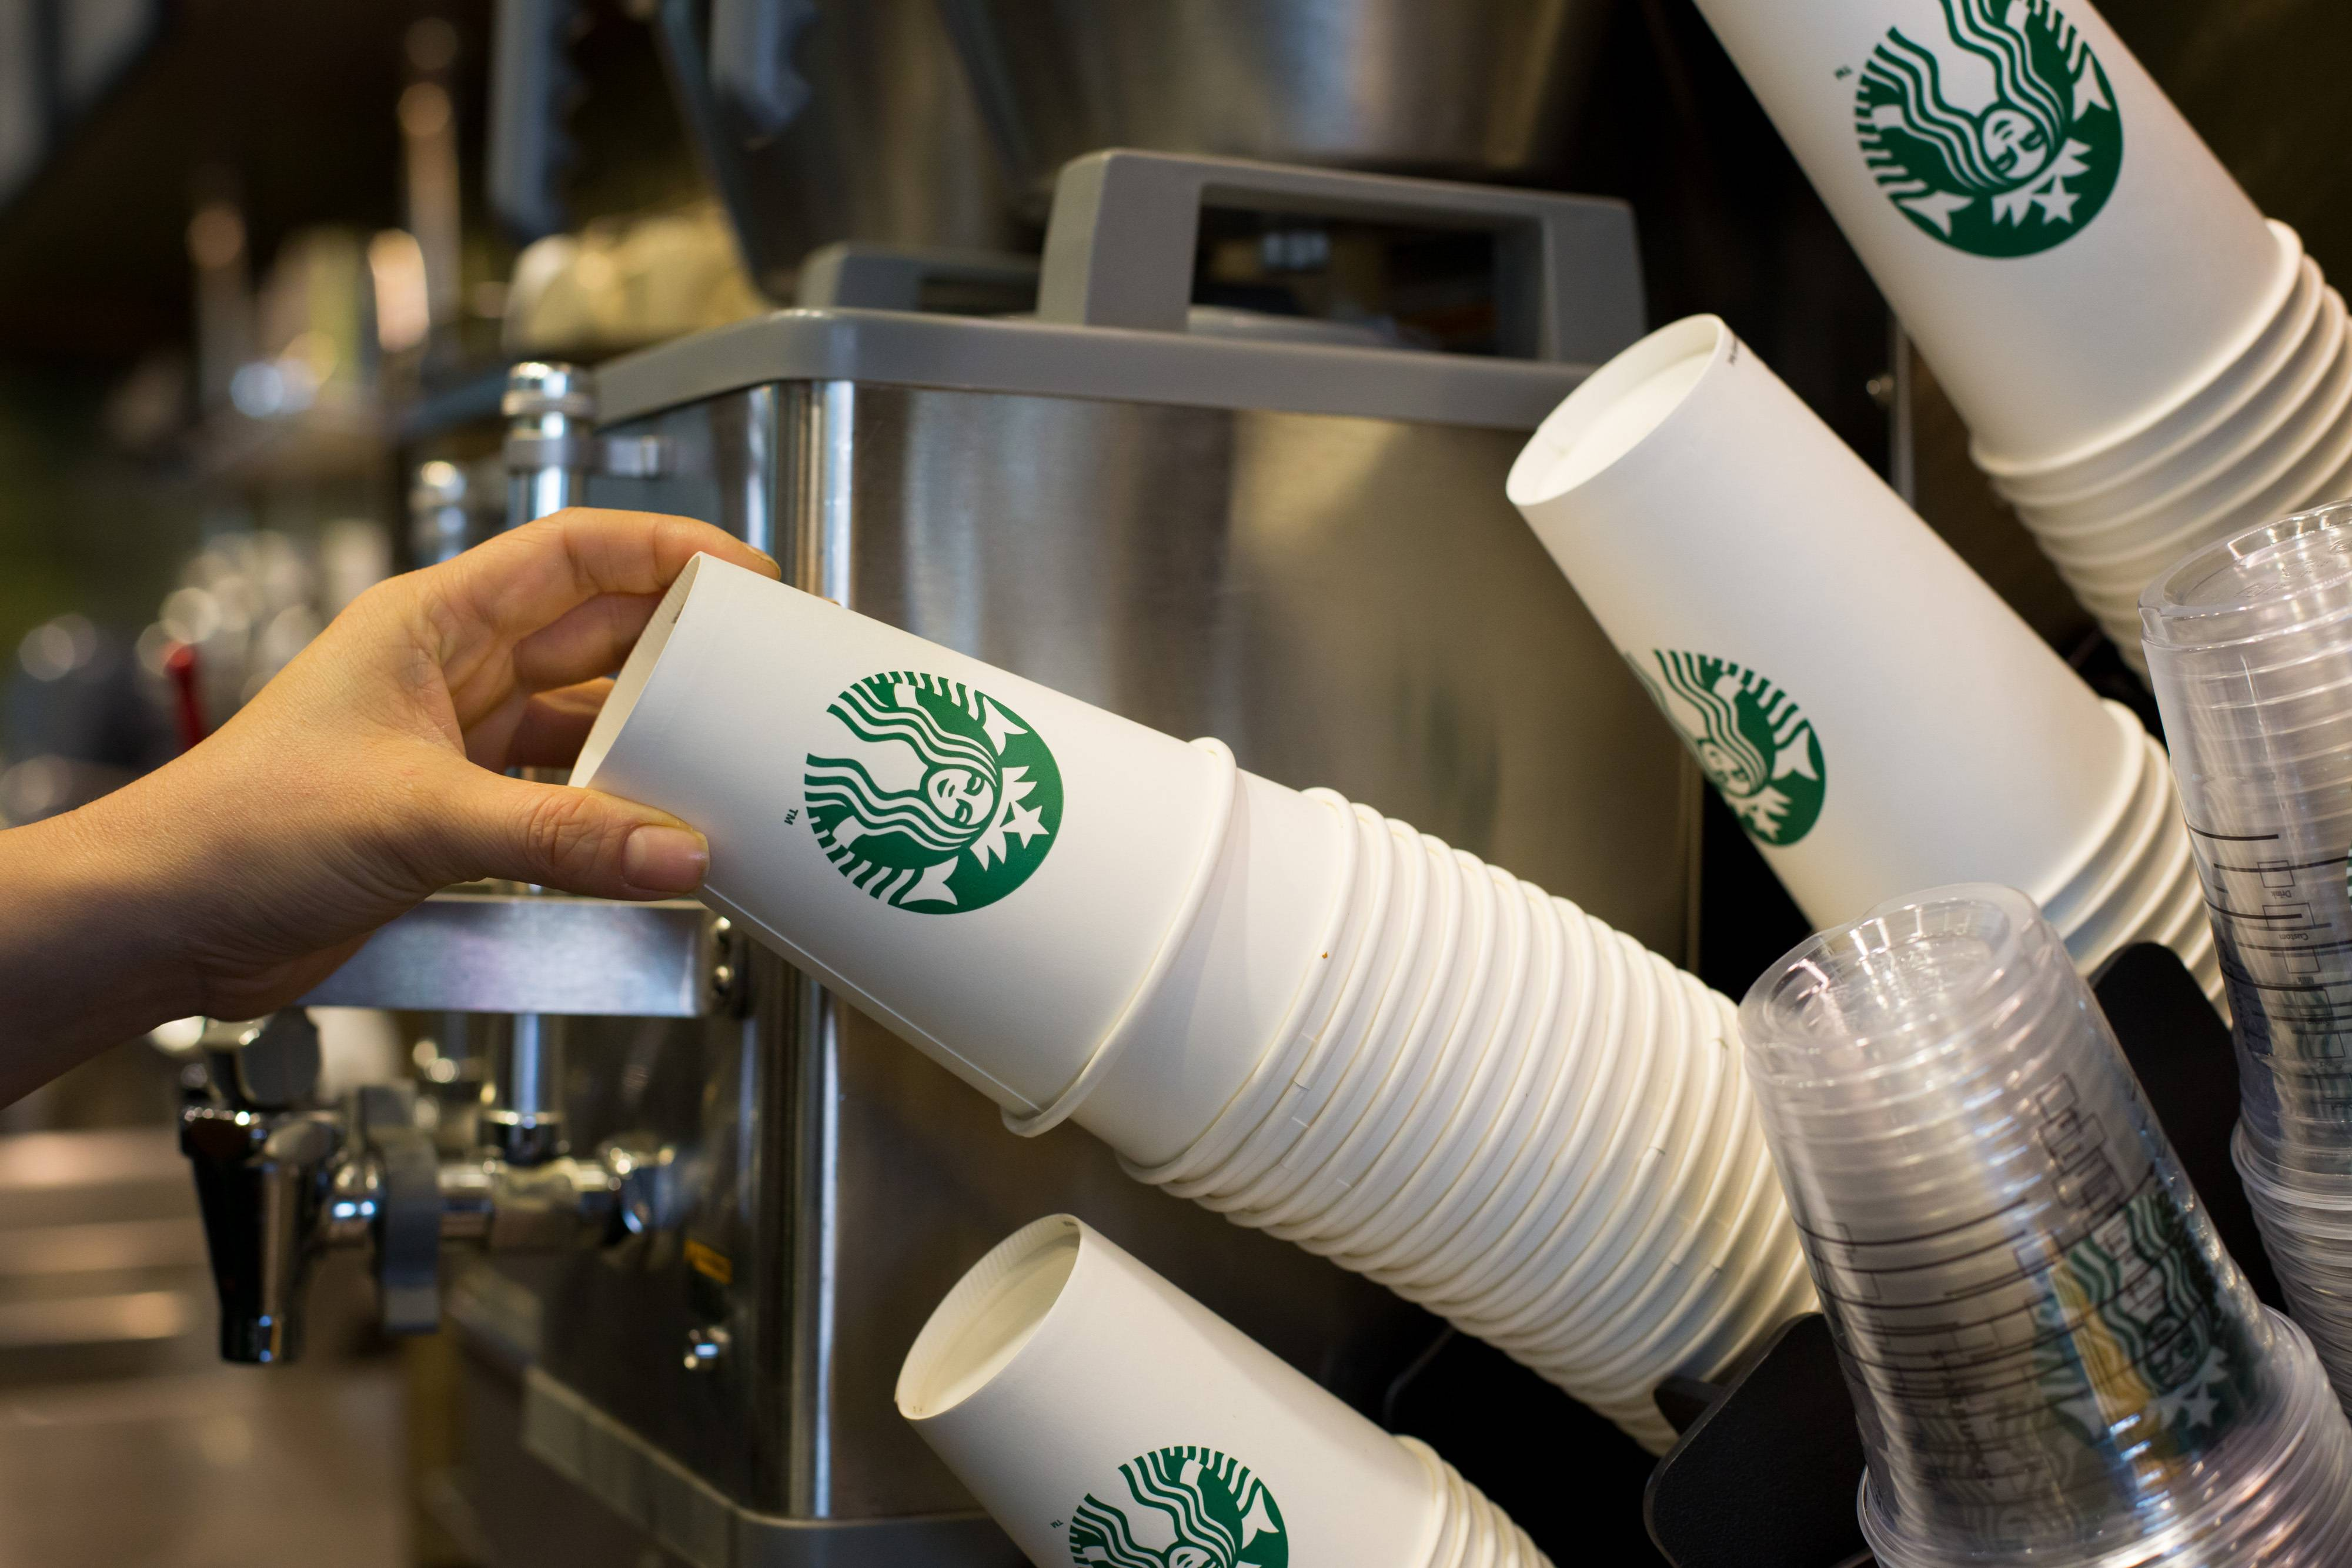 Starbucks will soon permit customers to leave a tip with its mobile payment app, which raises the question -- how often do people tip their baristas?